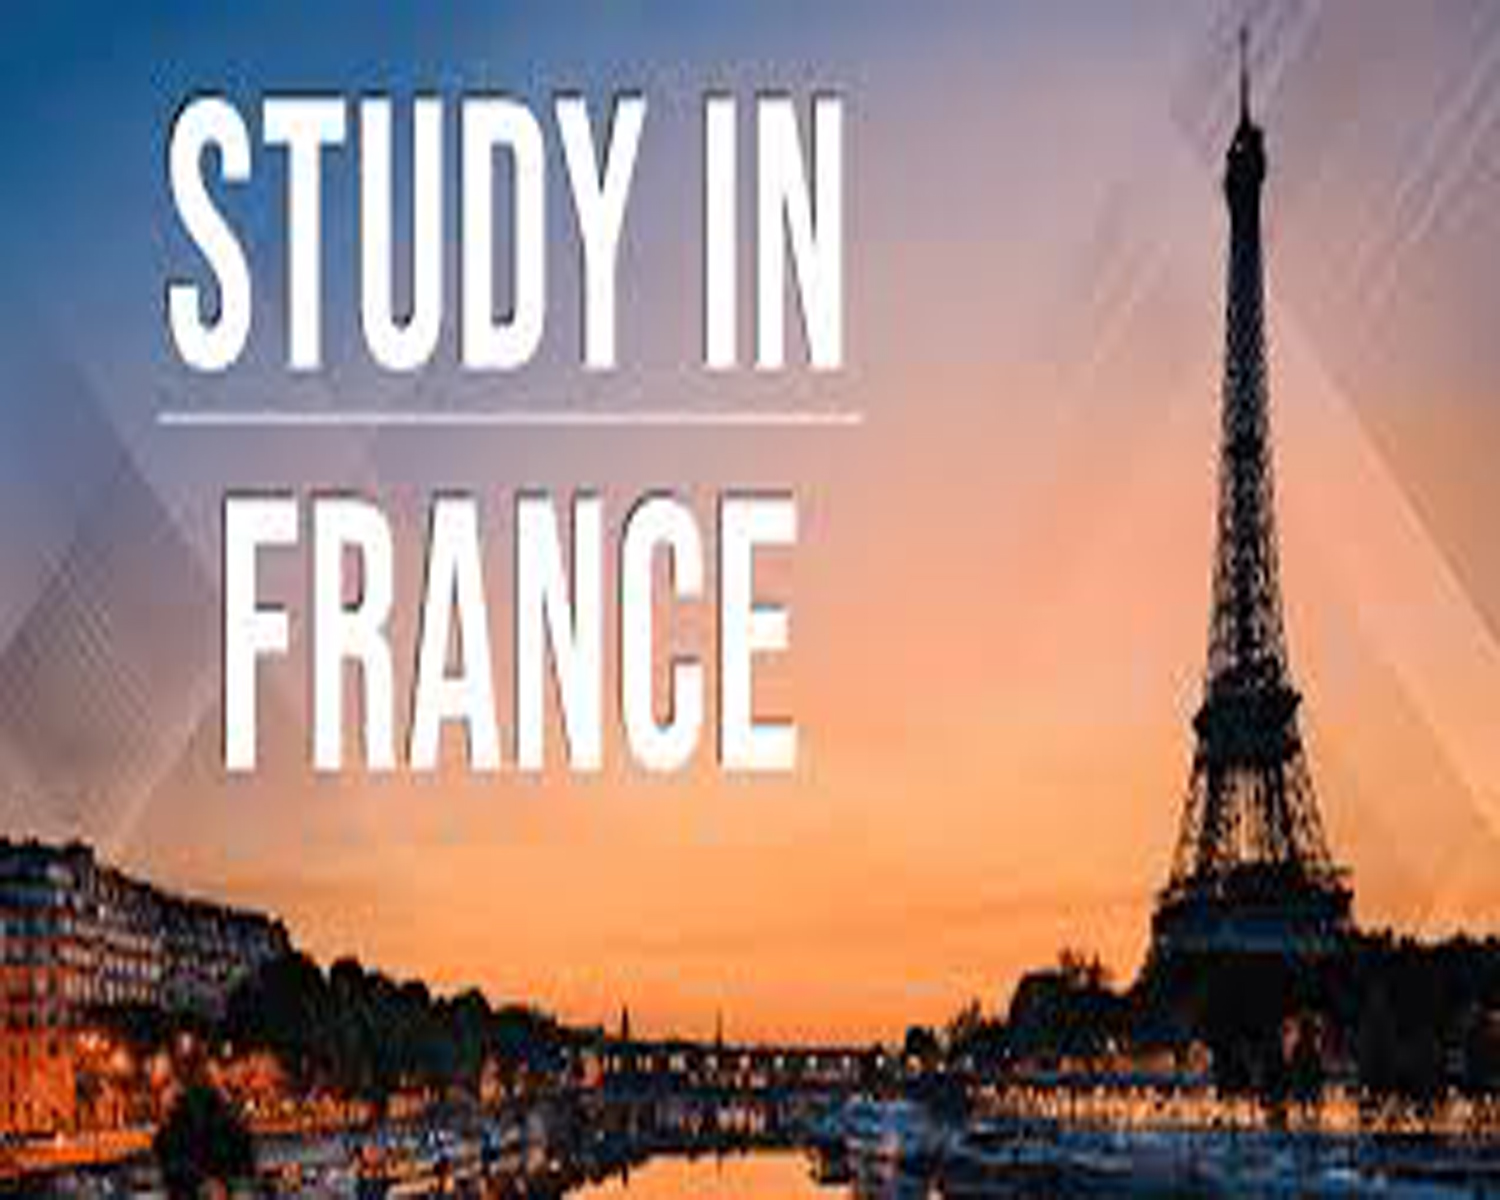 Three Effective Finance Tips to Study in France